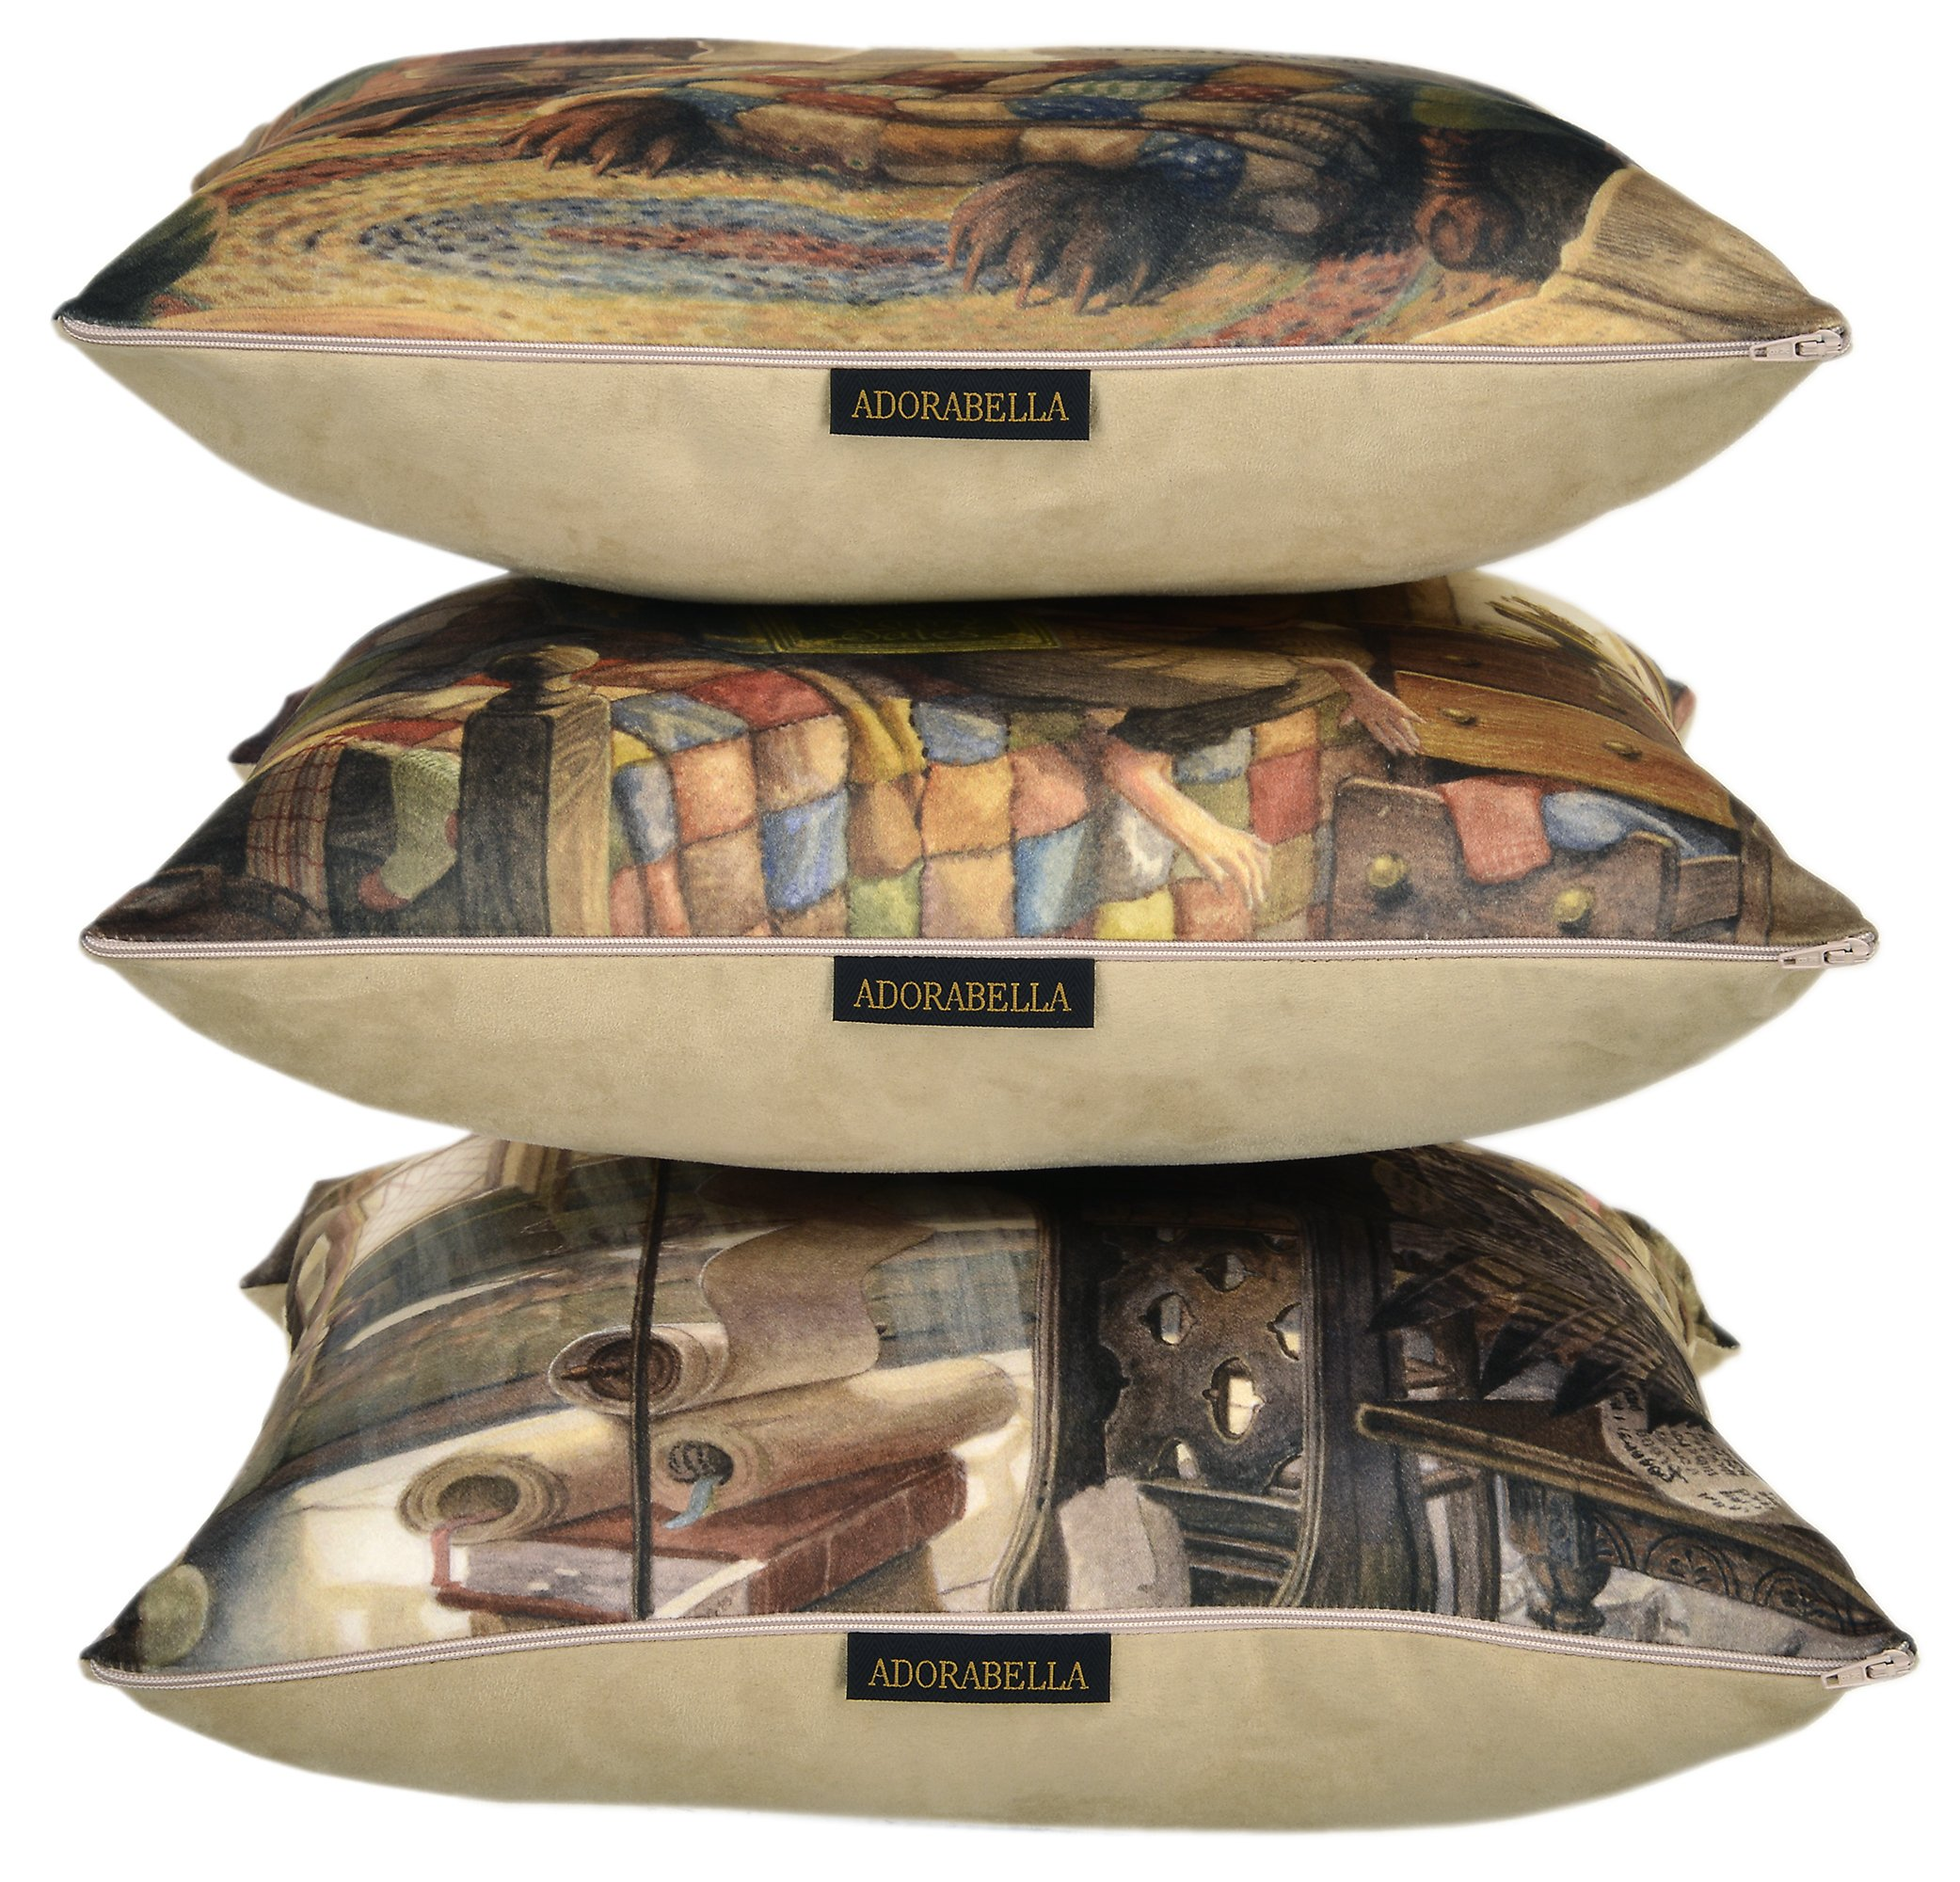 ADORABELLA Pantomime Animals Collection - Soft Touch Velvet Printed Pillow - Evening 17'' x 17'' Square Throw Pillow Home Decor Scatter Cushion - Complete With Insert by ADORABELLA (Image #3)